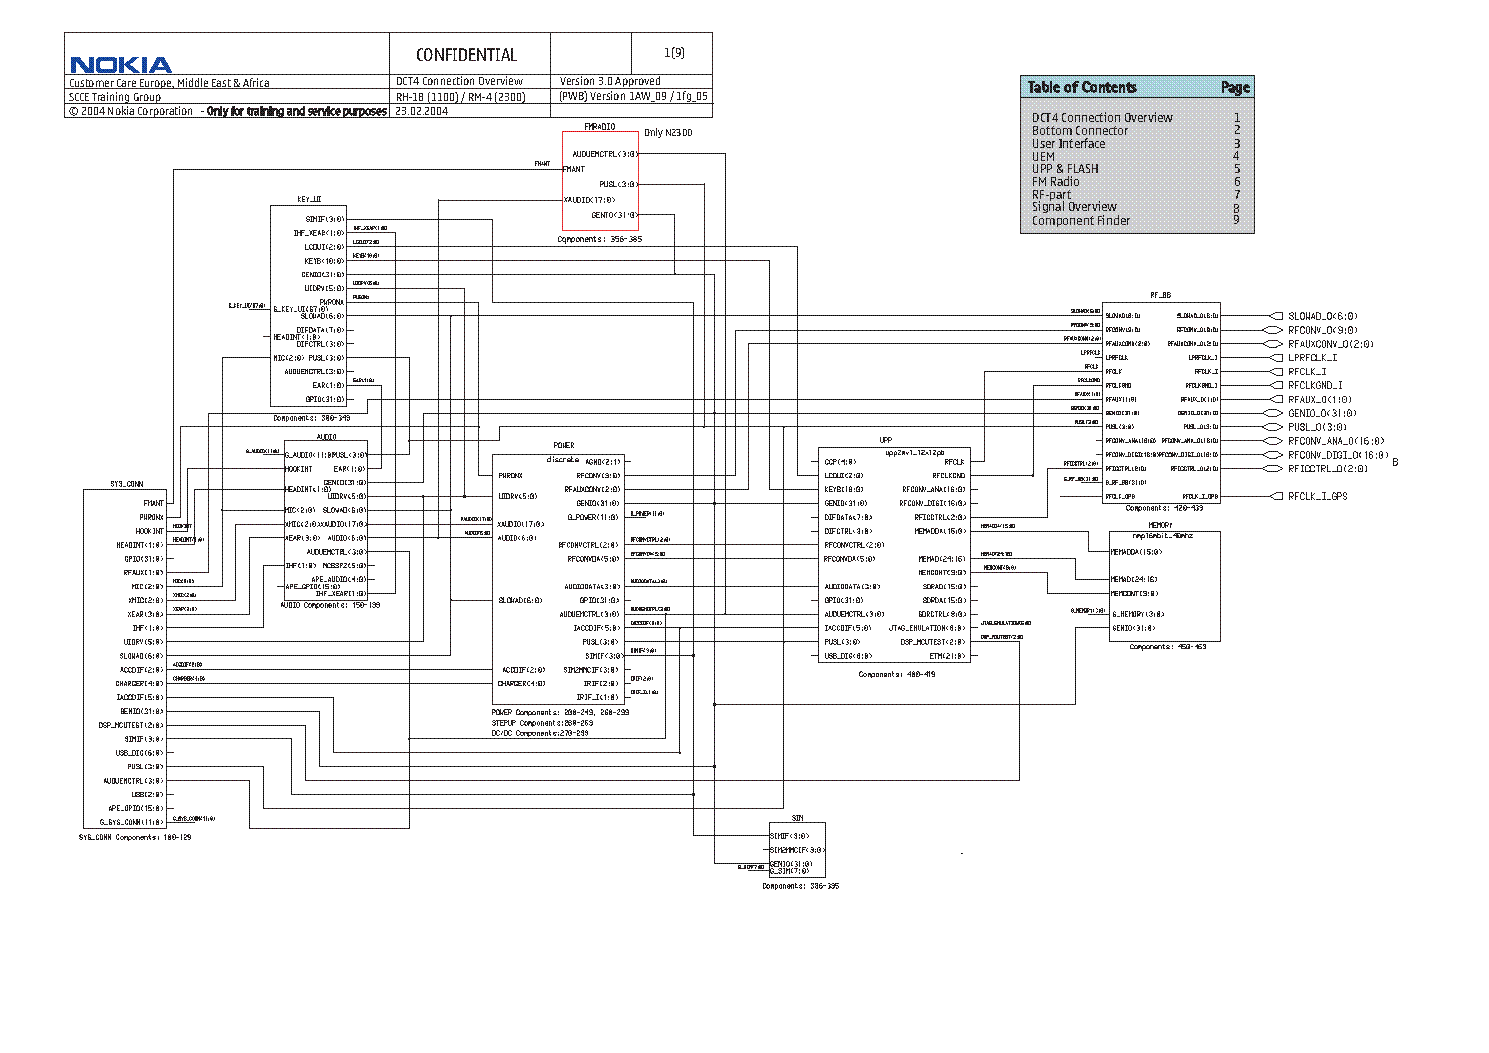 nokia_2300-1100-full-circuit.pdf_1 Nokia Schematic on diver mode, ear spkrsply, key features, tracfone phones, basic phones, girl holding, speaker ways, mobile phone motherboerd,